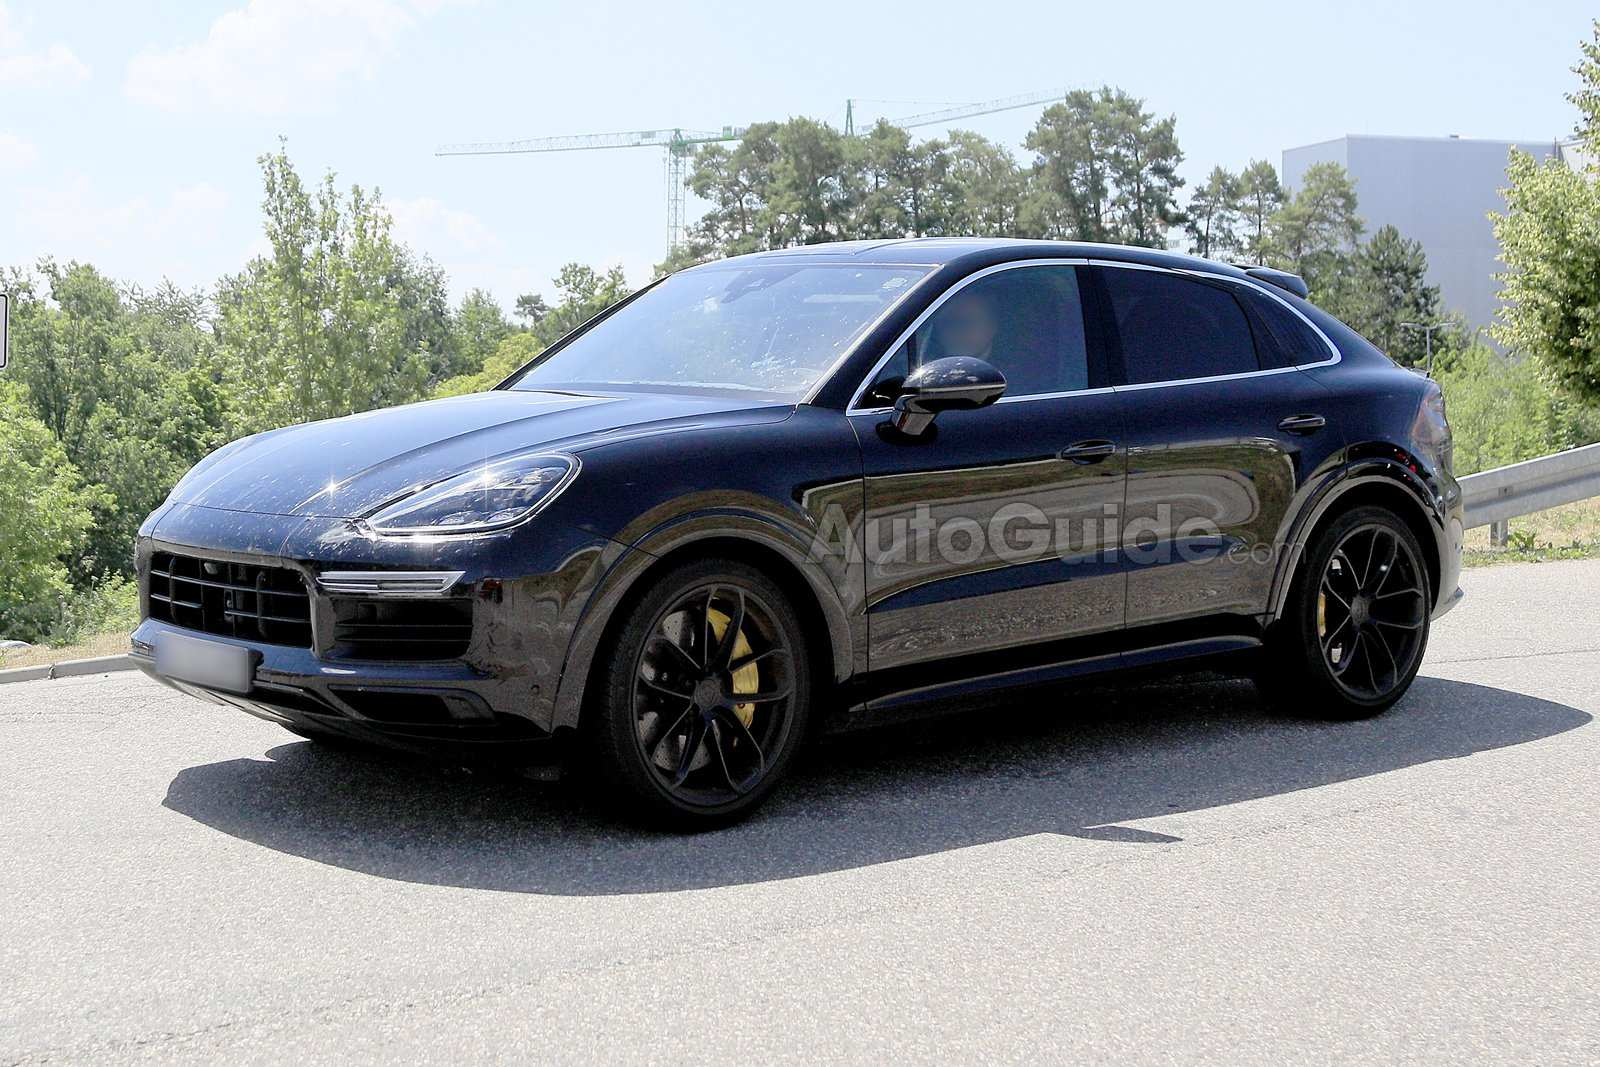 82 All New 2020 Porsche Macan Turbo Price Design And Review